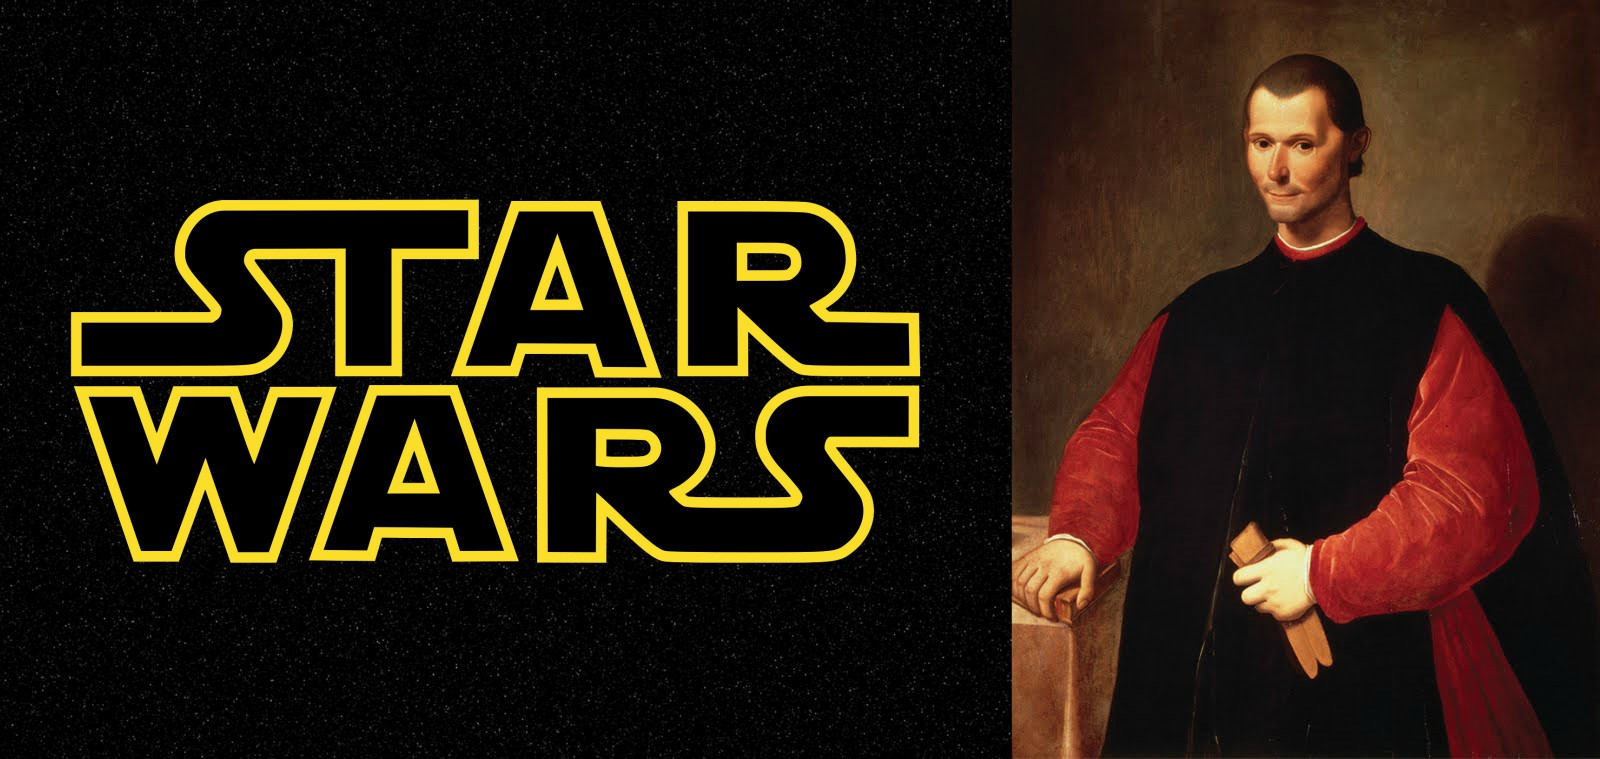 confronto tra machiavelli e star wars